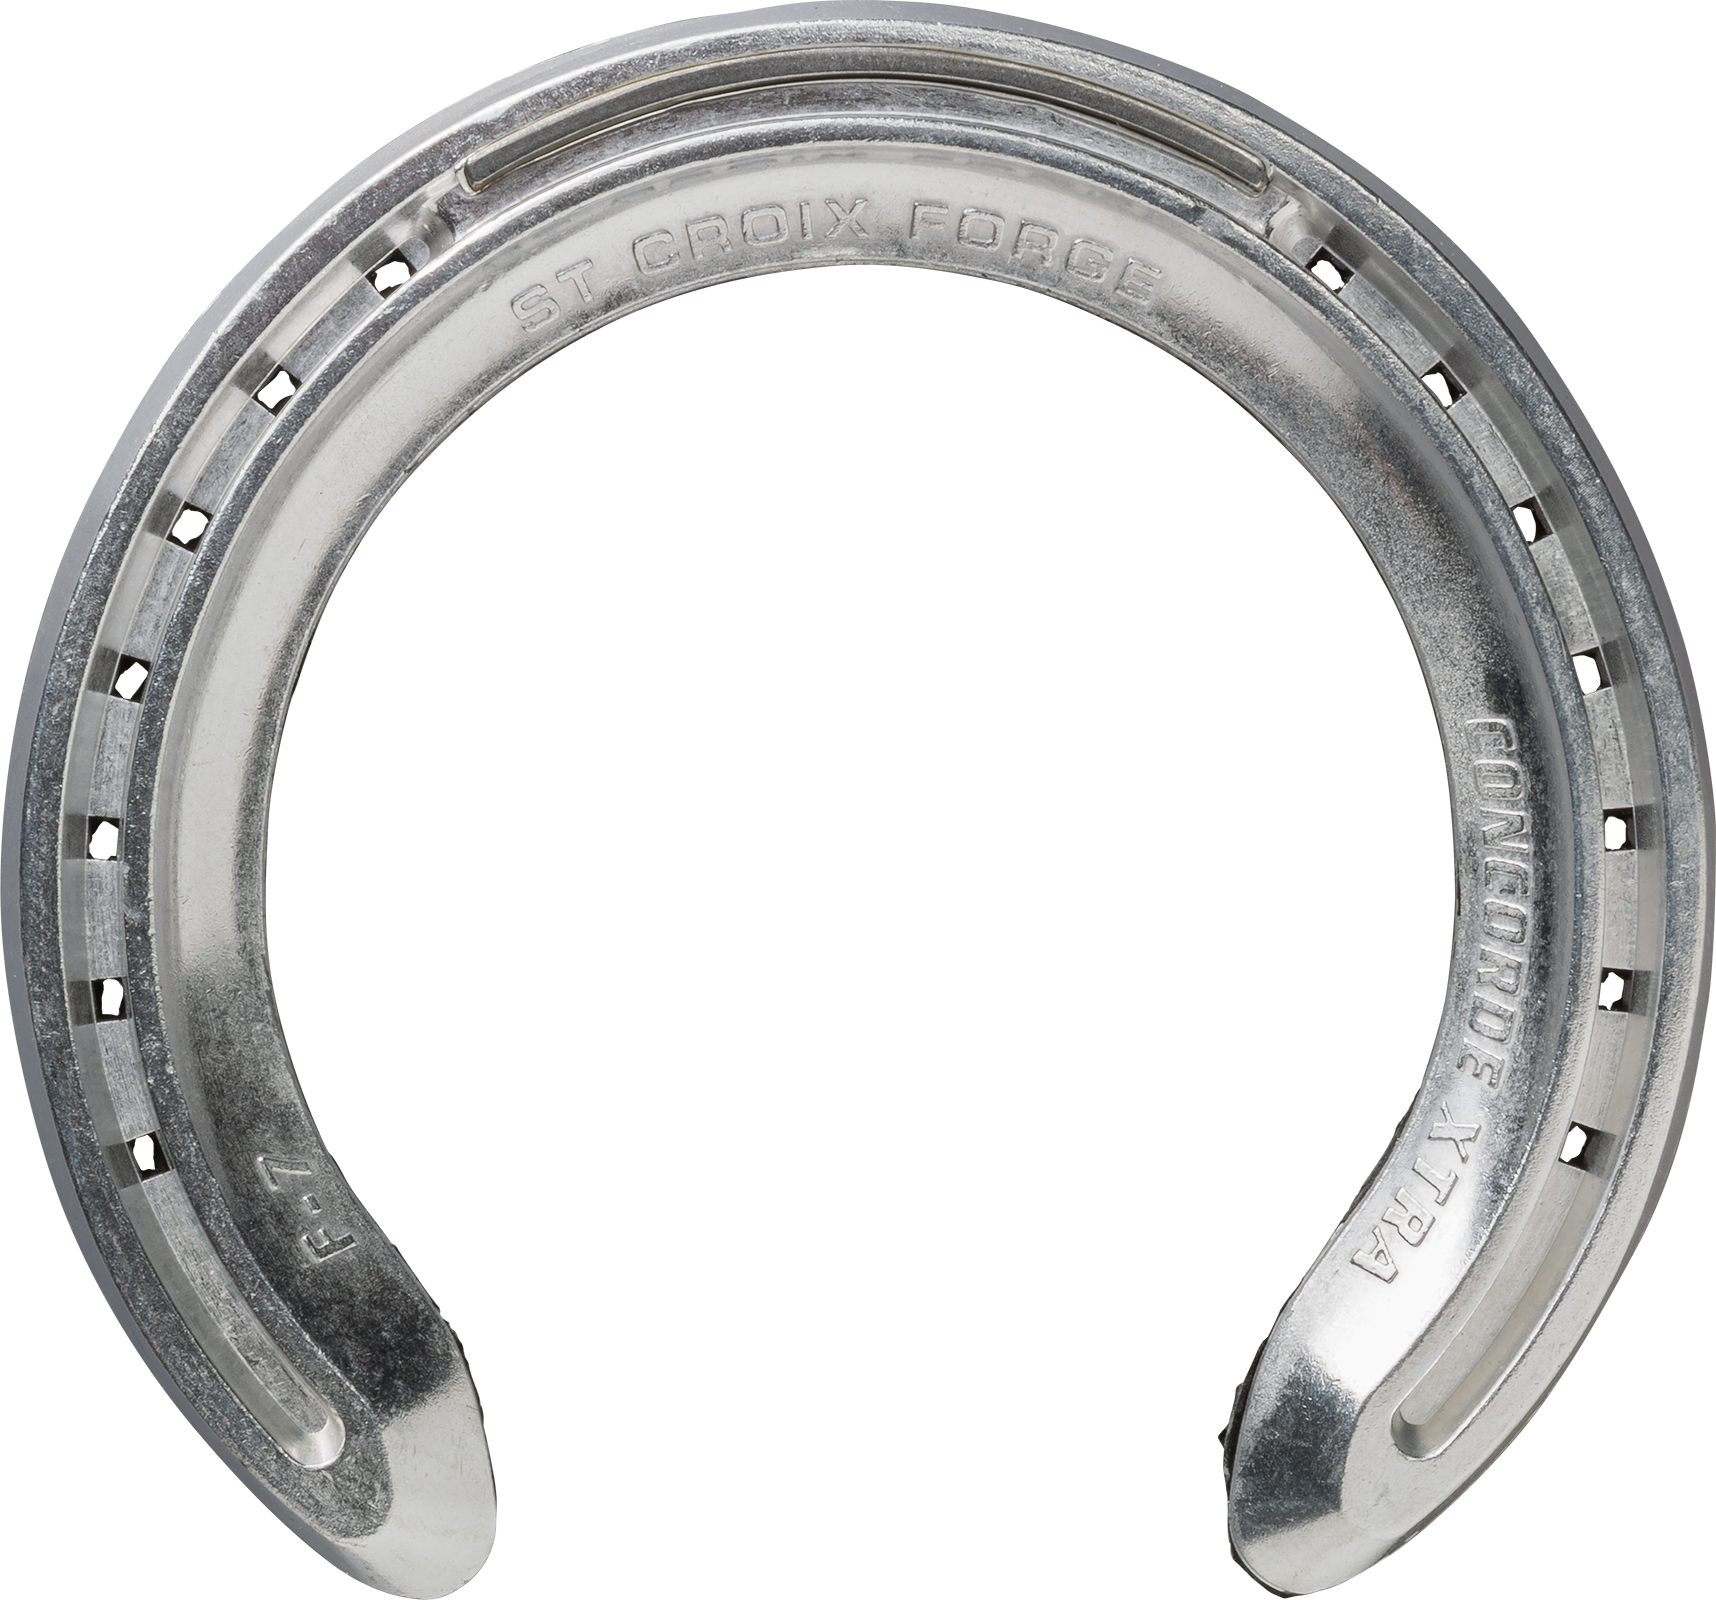 St. Croix Concorde Extra Air horseshoes, bottom side